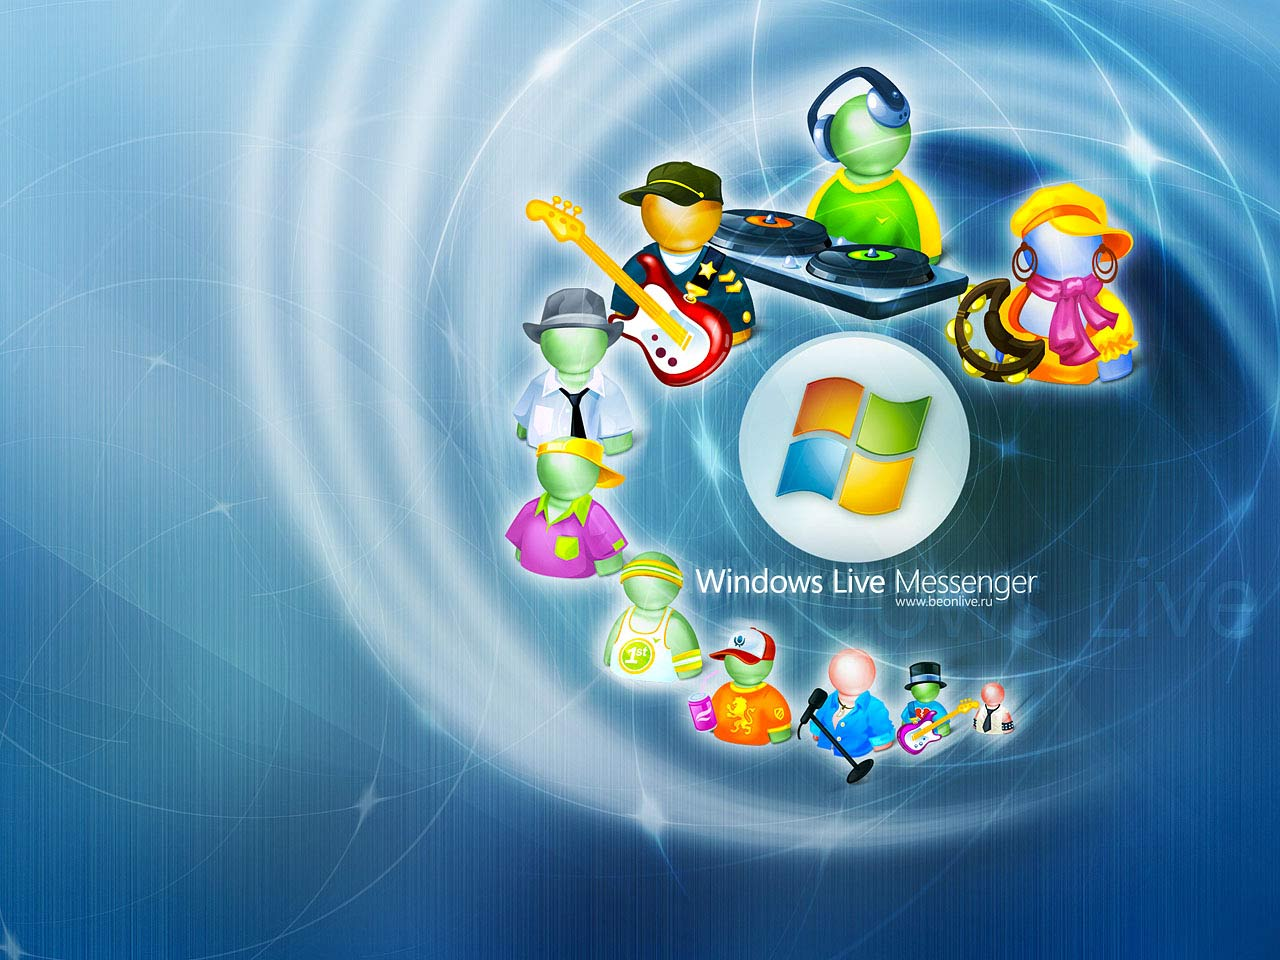 Windows Live Messenger : Tous Les Wallpapers Windows Live Messenger .